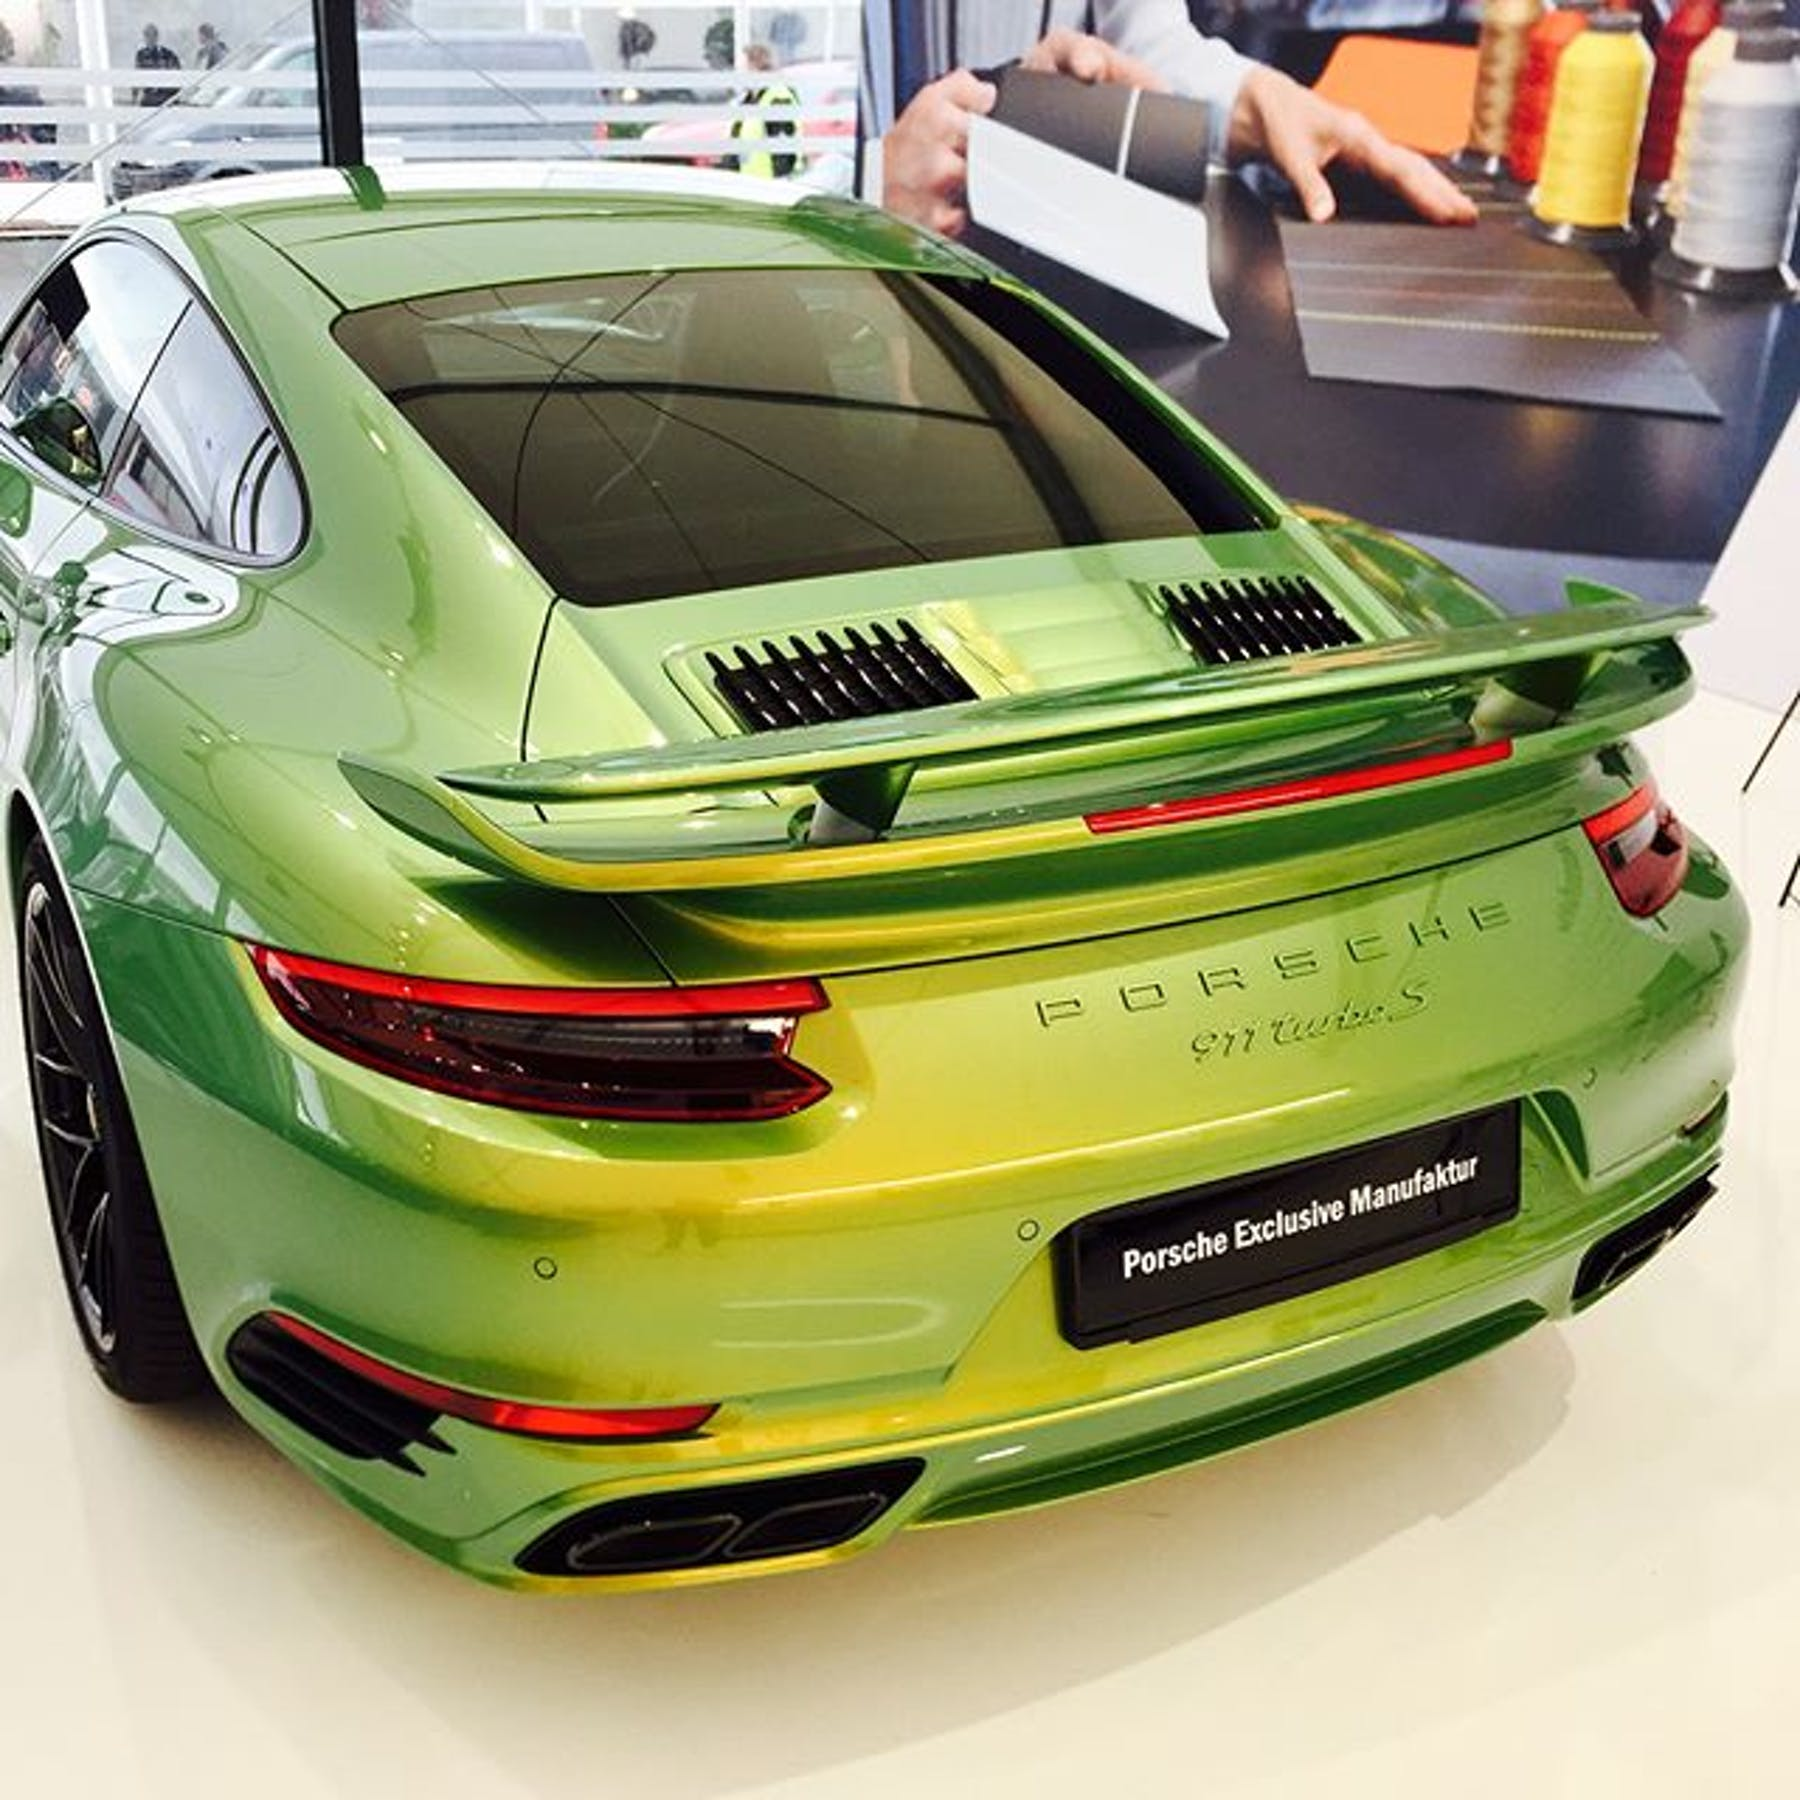 Porsche 911 Turbo S Python Green 'Chromaflair'